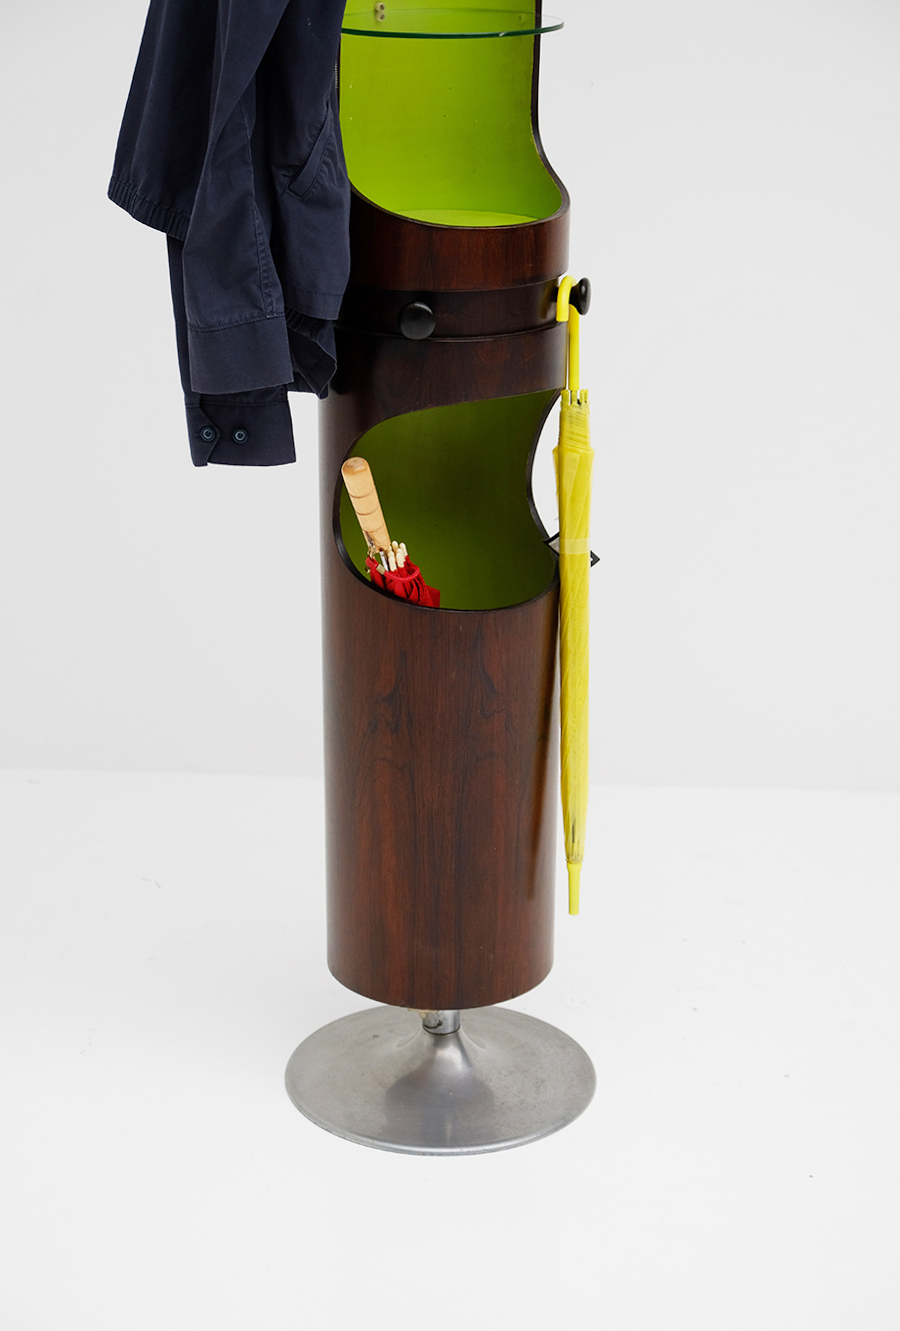 1960s Totem shaped coat stand